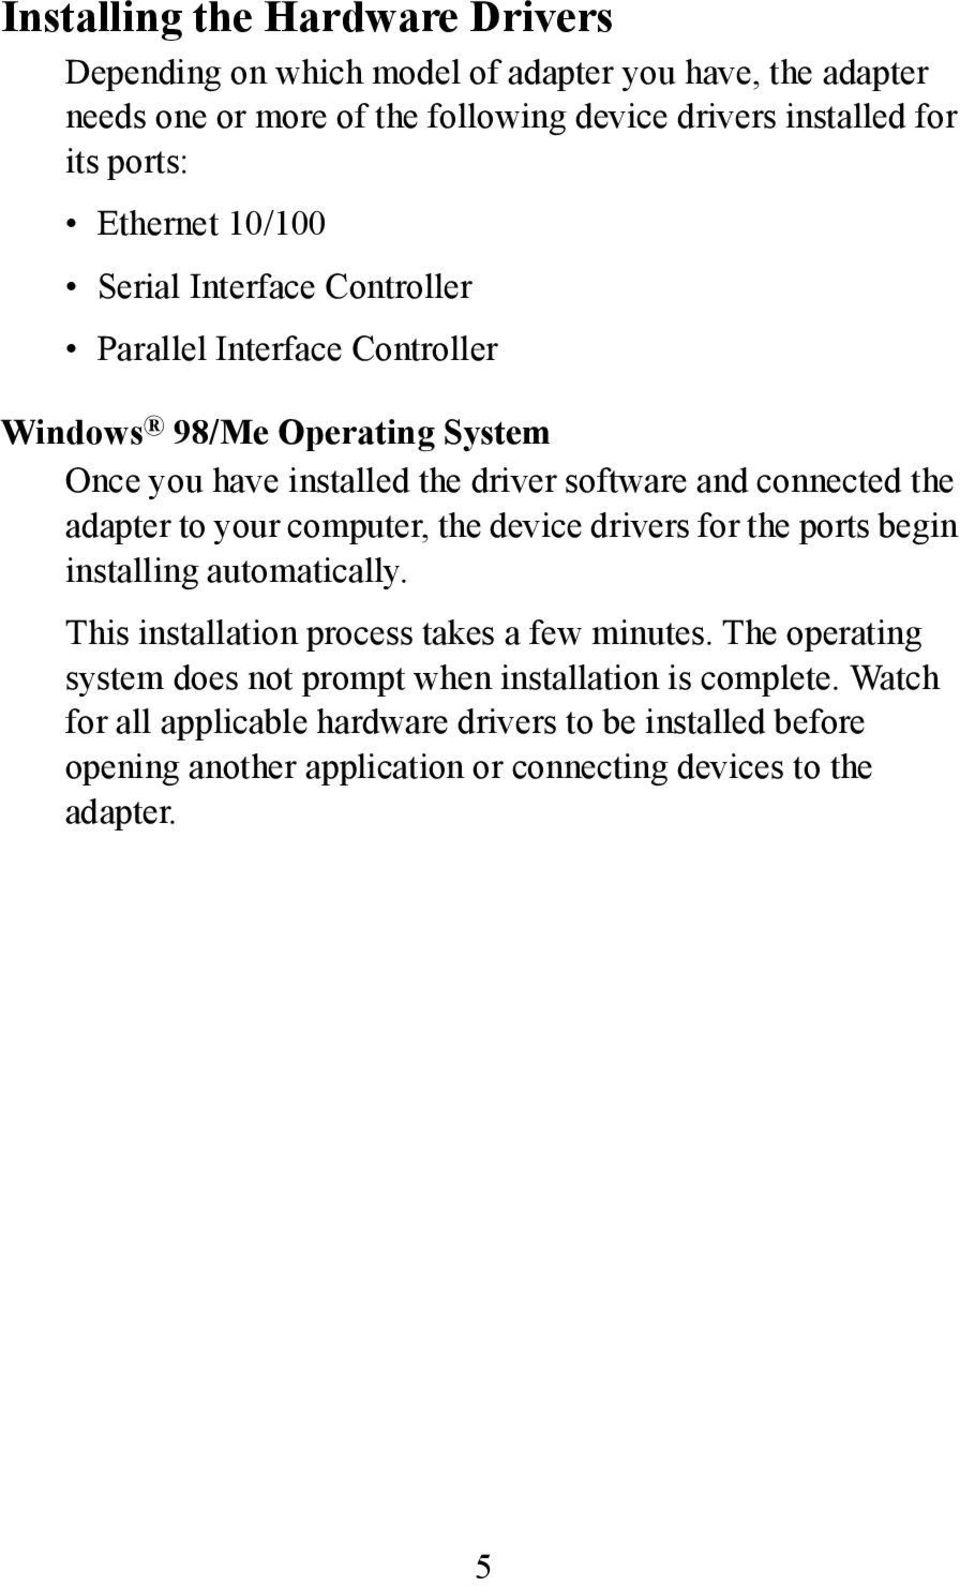 adapter to your computer, the device drivers for the ports begin installing automatically. This installation process takes a few minutes.